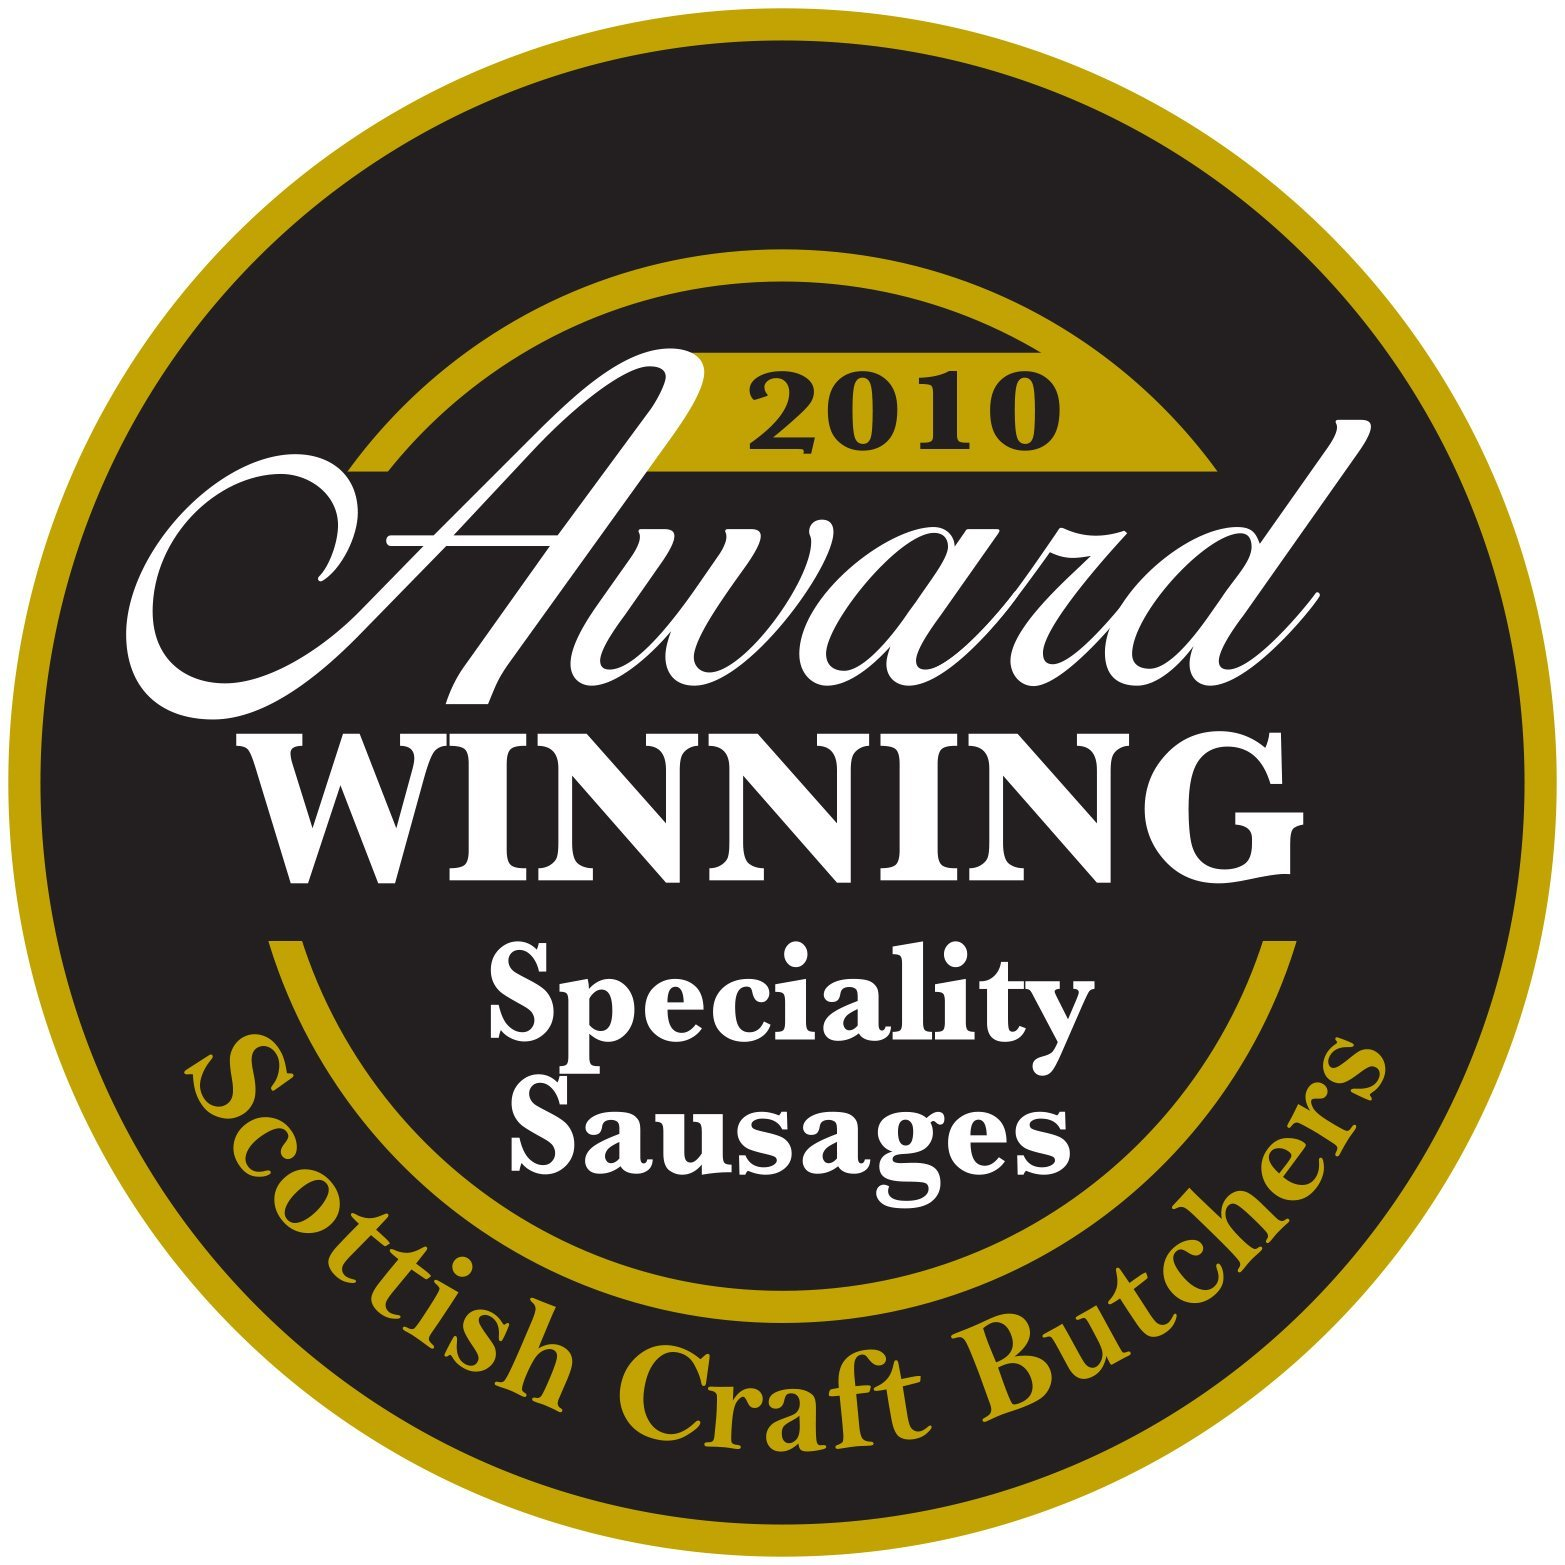 2010 award for speciality sausages